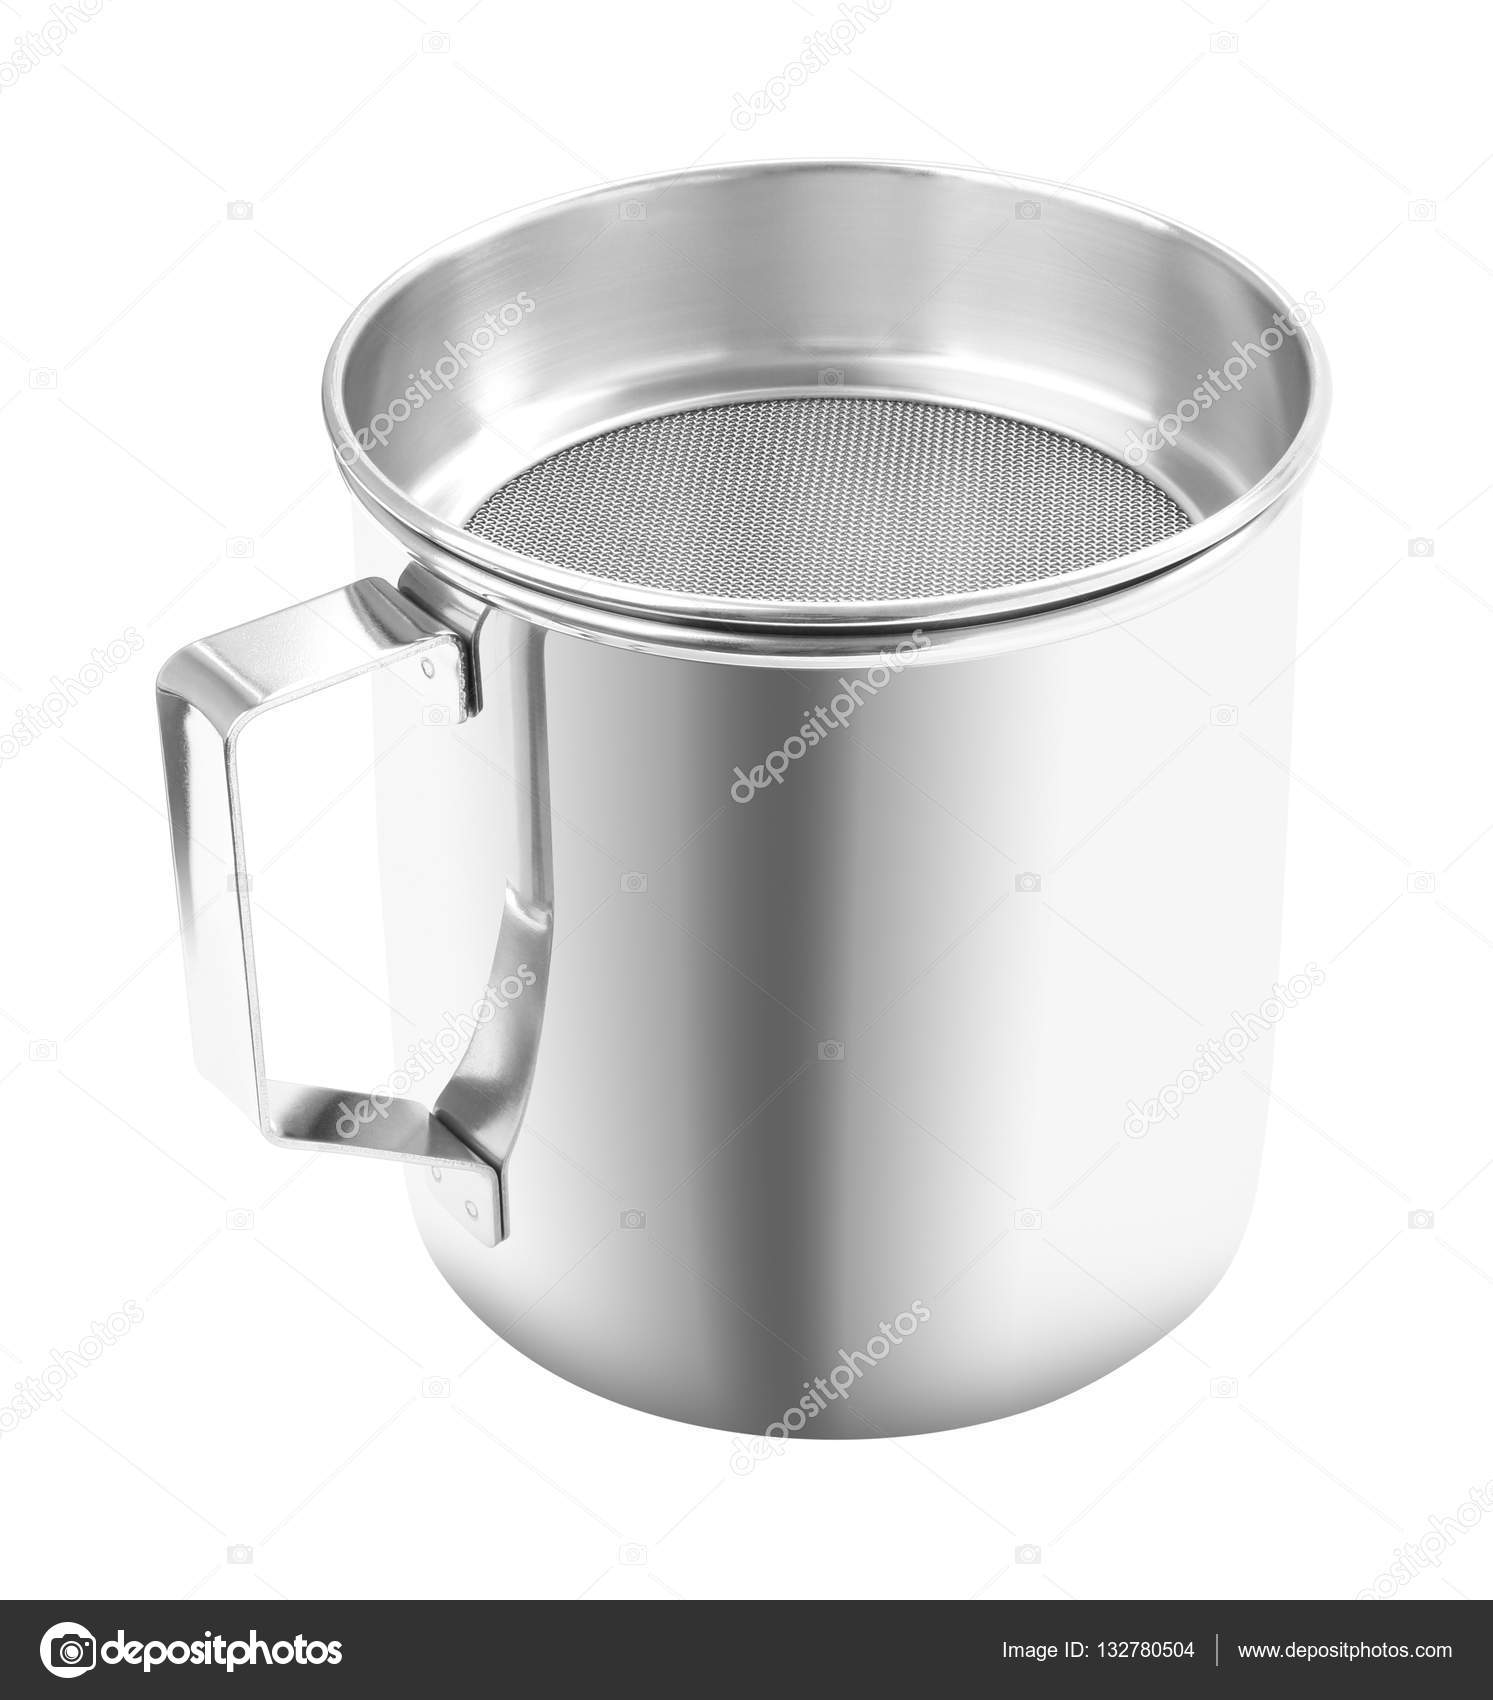 kitchen gutter industrial cart upper handle open stainless cup with filter on white background stock photo